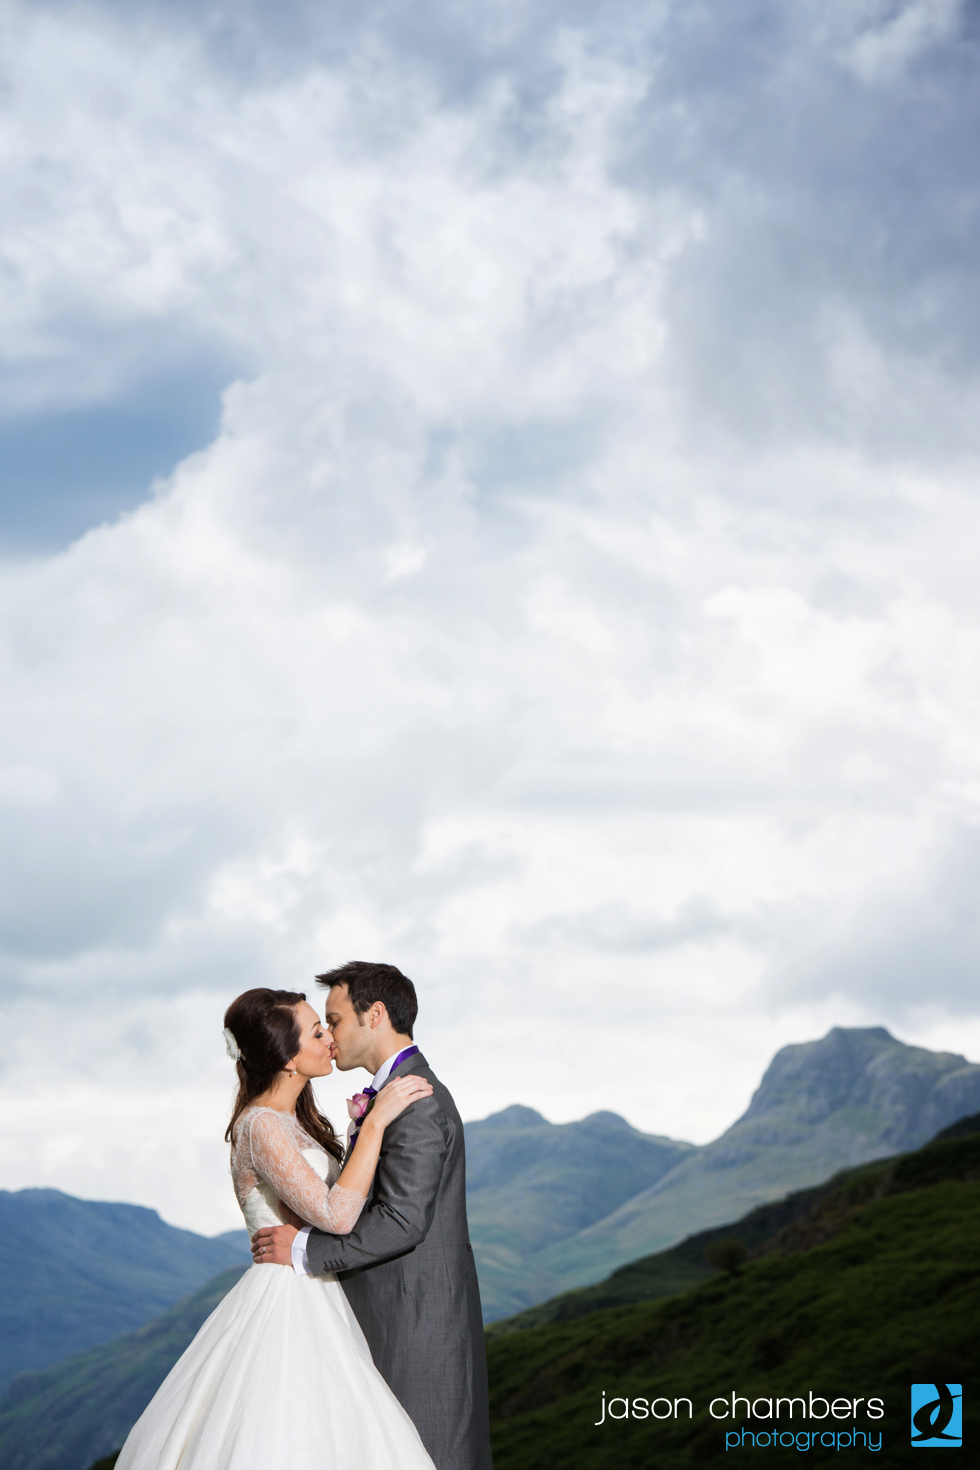 Langdale Wedding Photography - Jason Chambers